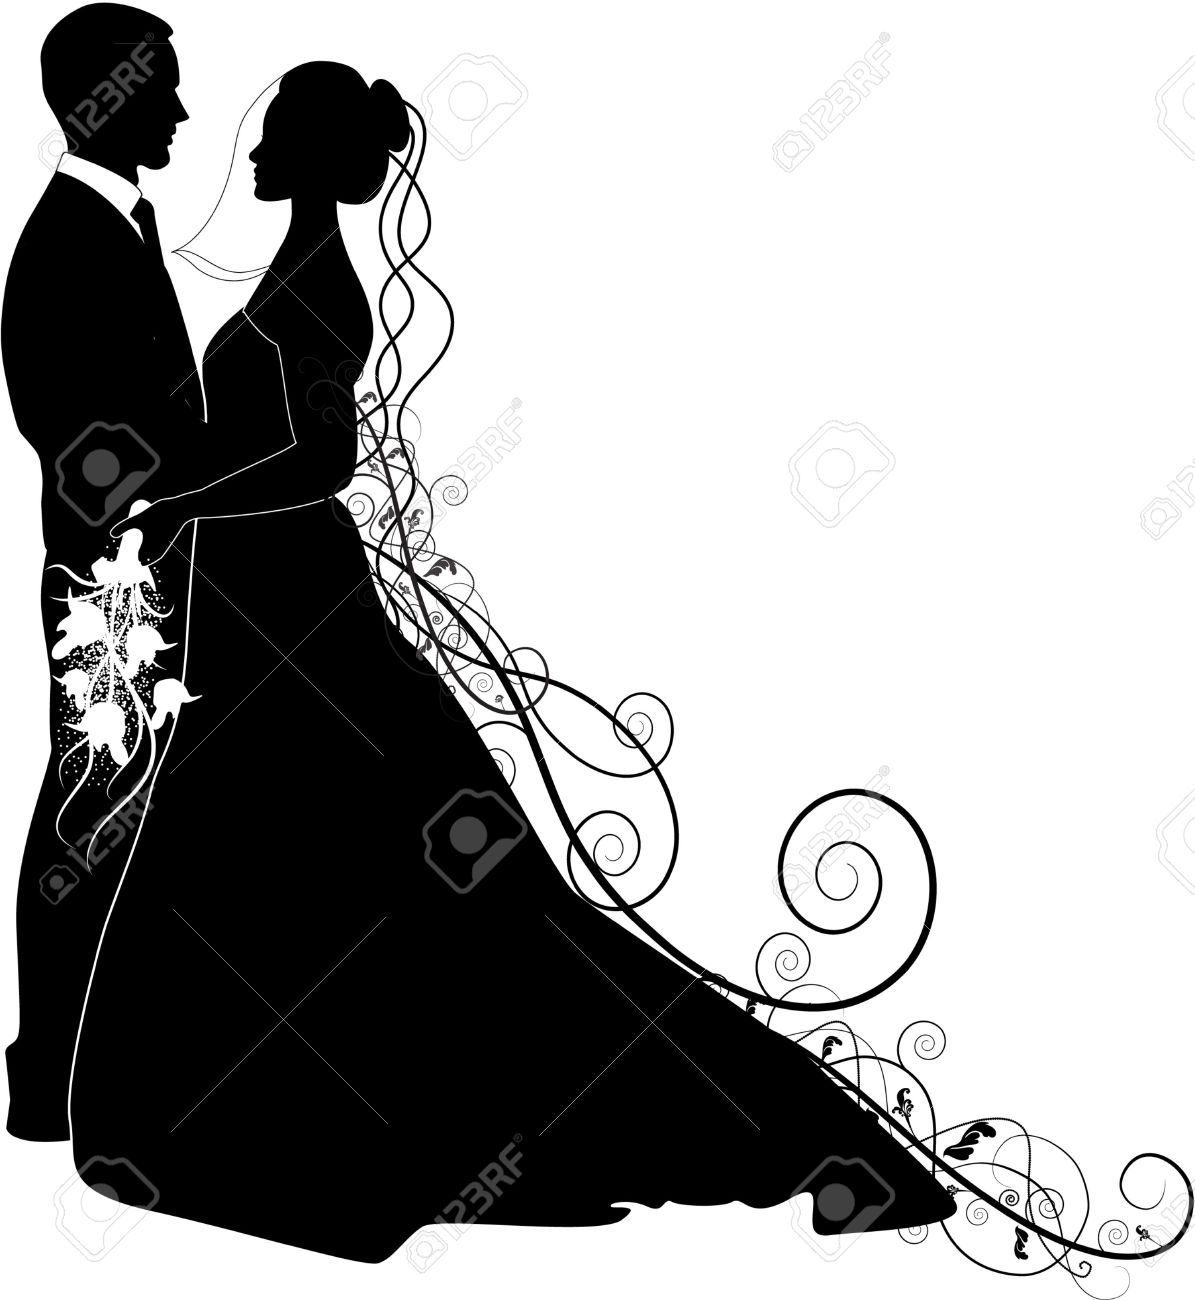 Bride And Groom Silhouette Cliparts, Stock Vector And